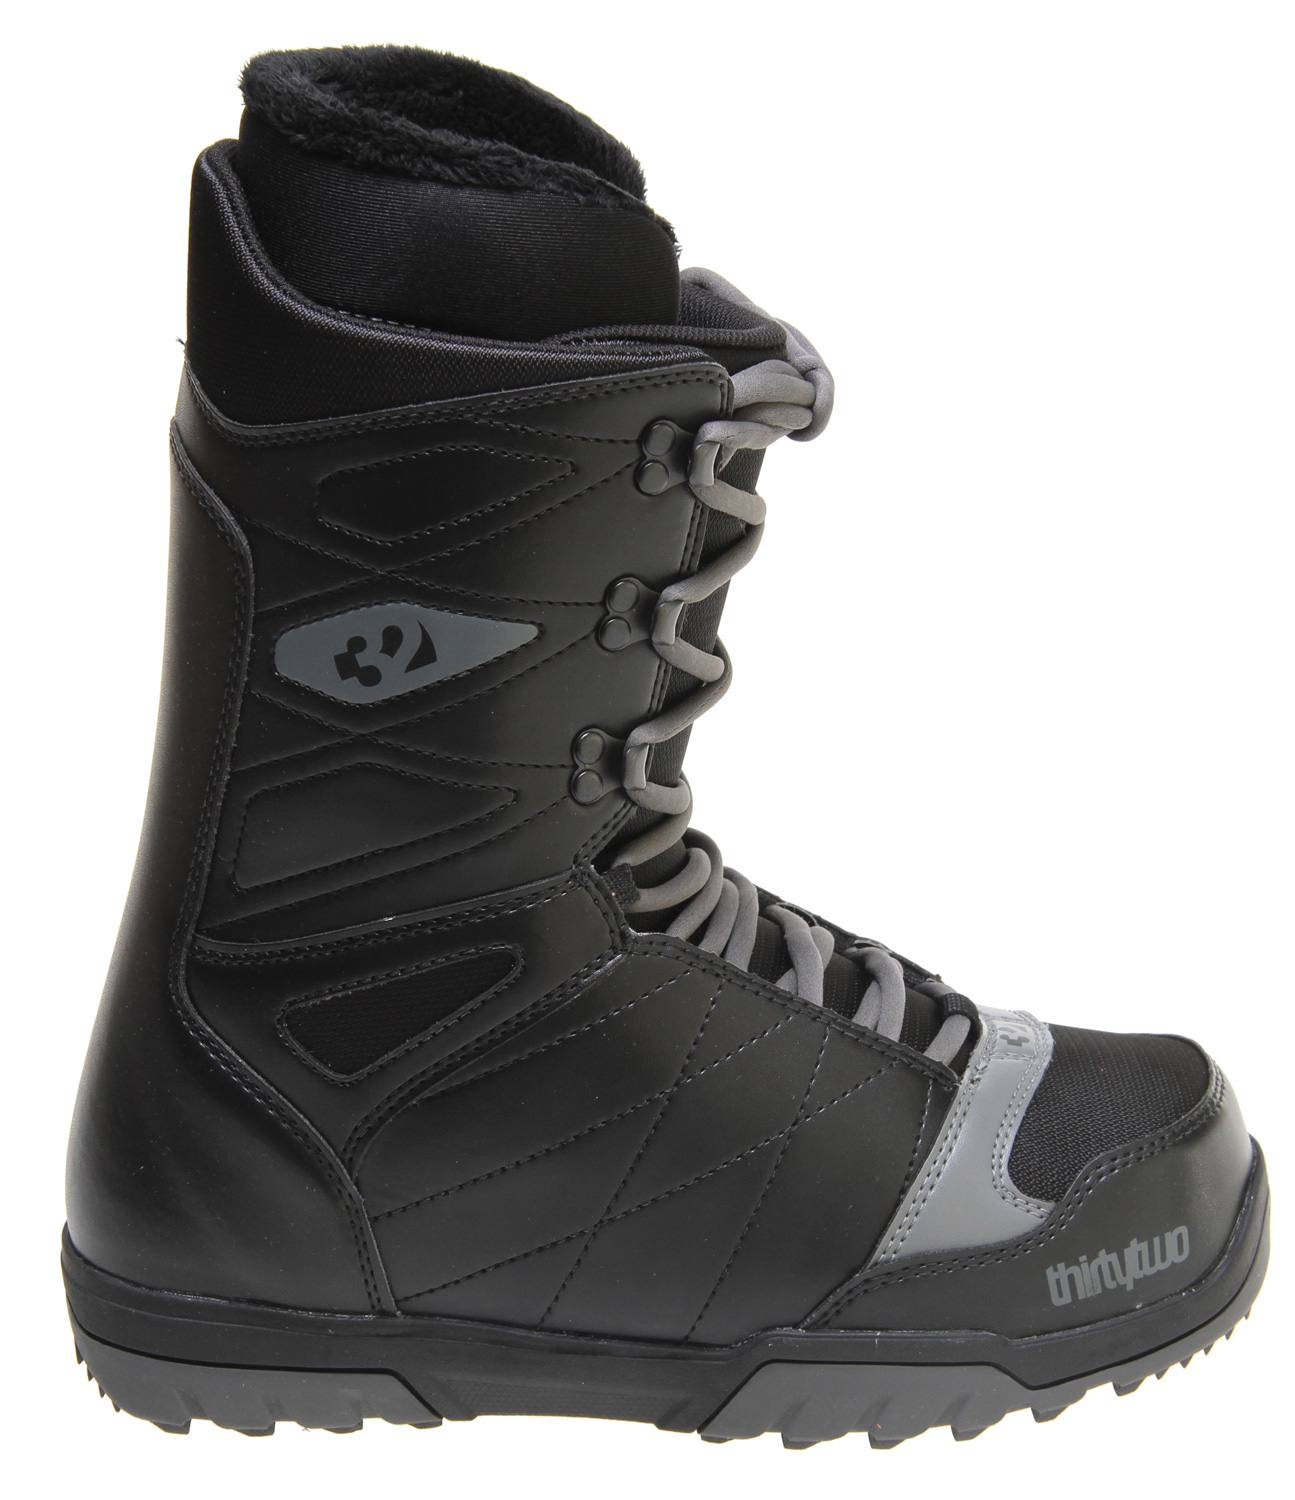 Snowboard The Thirty Two Summit Snowboard Boot is simple and understated to keep you ahead of the learning curve.Key Features of the 32 - Thirty Two Summit Snowboard Boots: Comfort Fit Level 1 Liner Level 1 Ortholite Footbed 3/10 Flex Rating Rubber Outsole With EVA Cushioning Internal Lacing System - $69.95